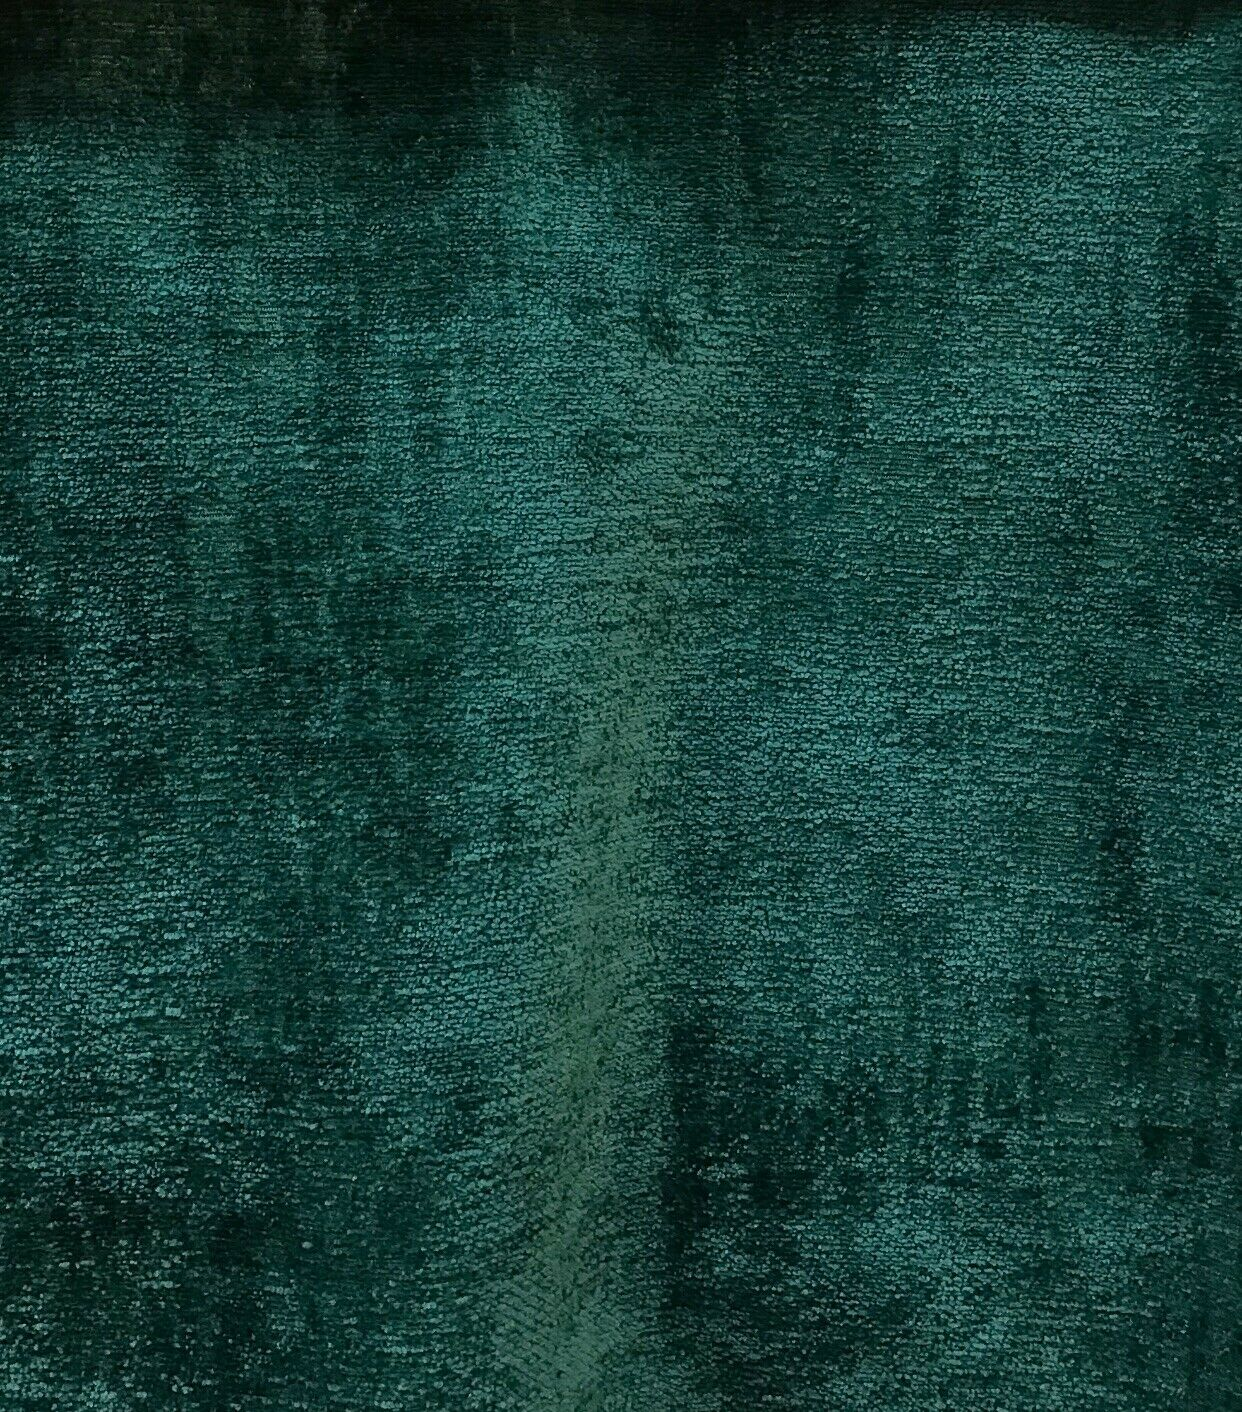 Designer Upholstery Thick And Soft Chenille Velvet Fabric Emerald Green Bty Www Fancystylesfabric Com